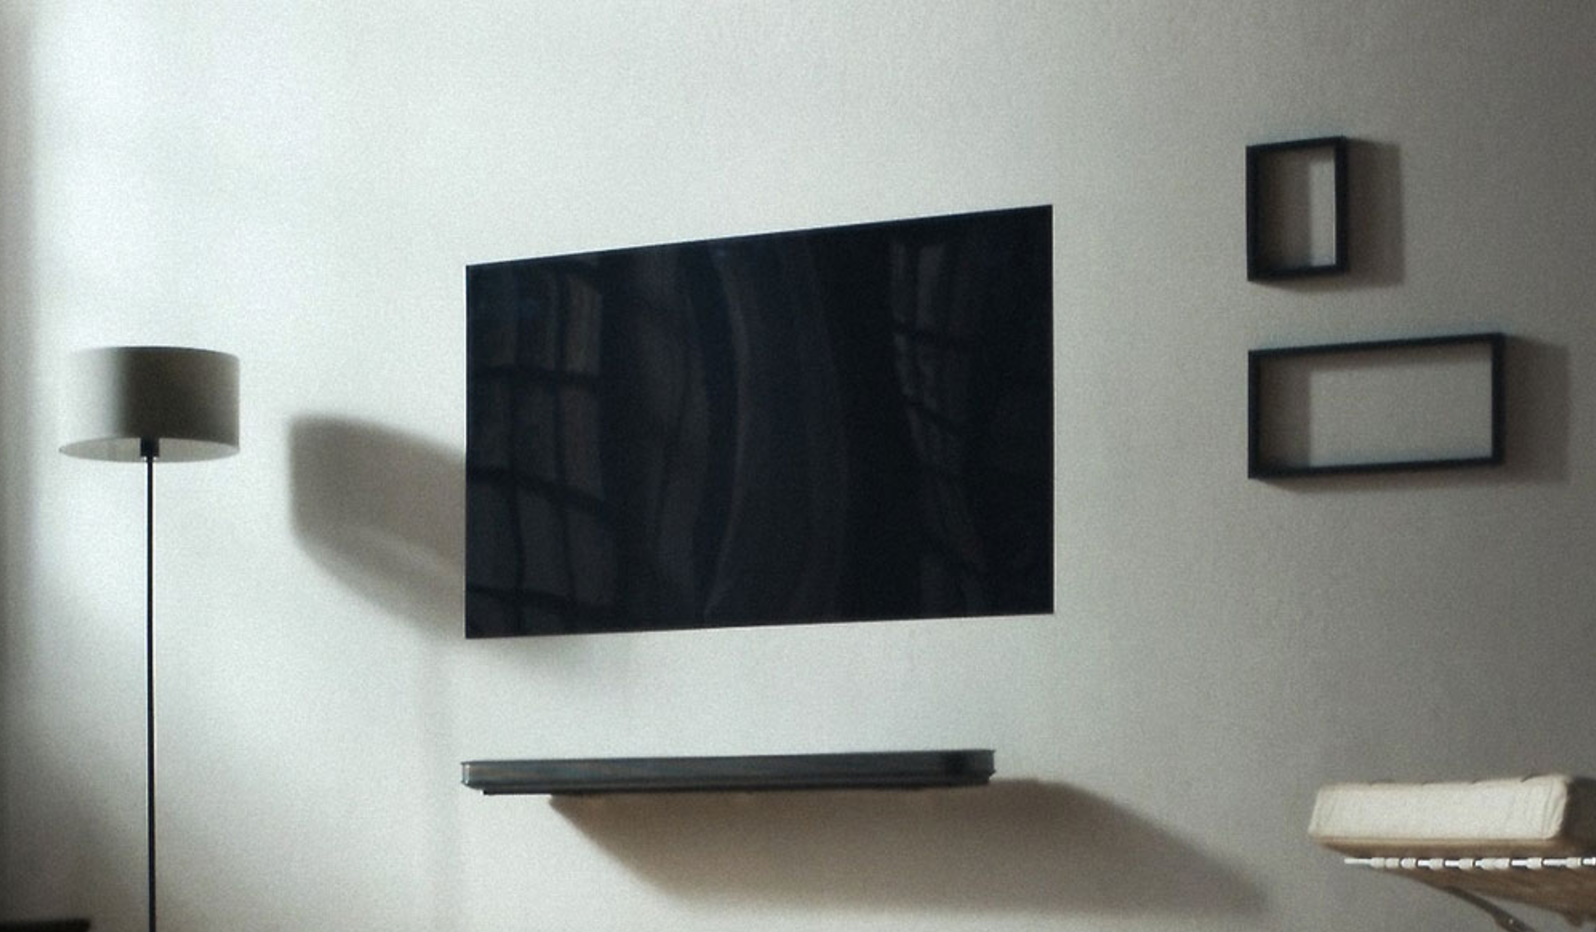 LG's Wallpaper TV goes big: 77 Inch super-thin TV available in